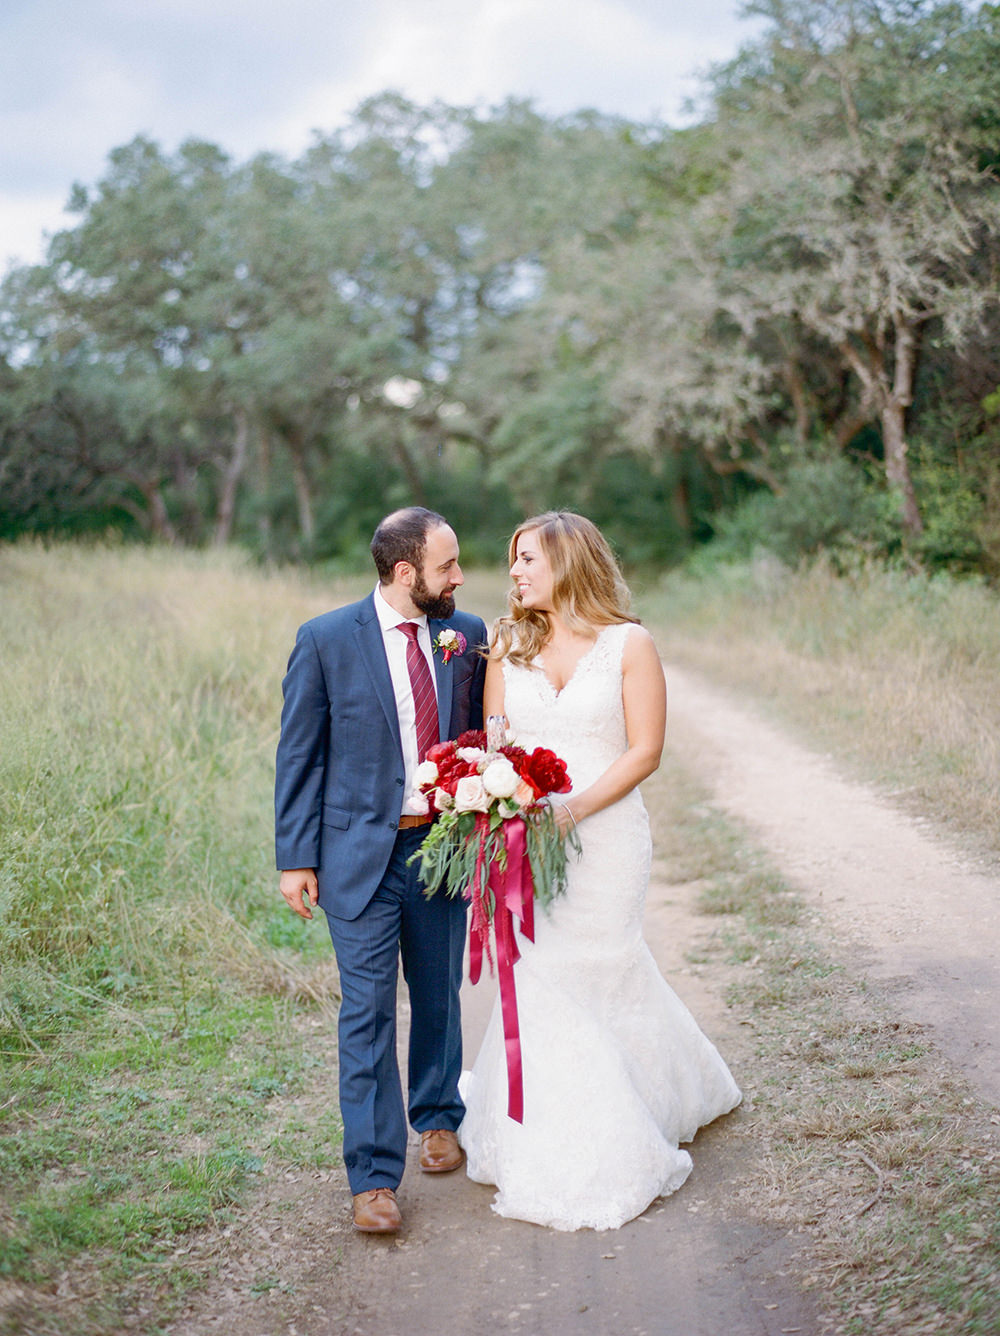 Hill Country Garden Wedding - photo by Honey Gem Creative http://ruffledblog.com/hill-country-garden-wedding